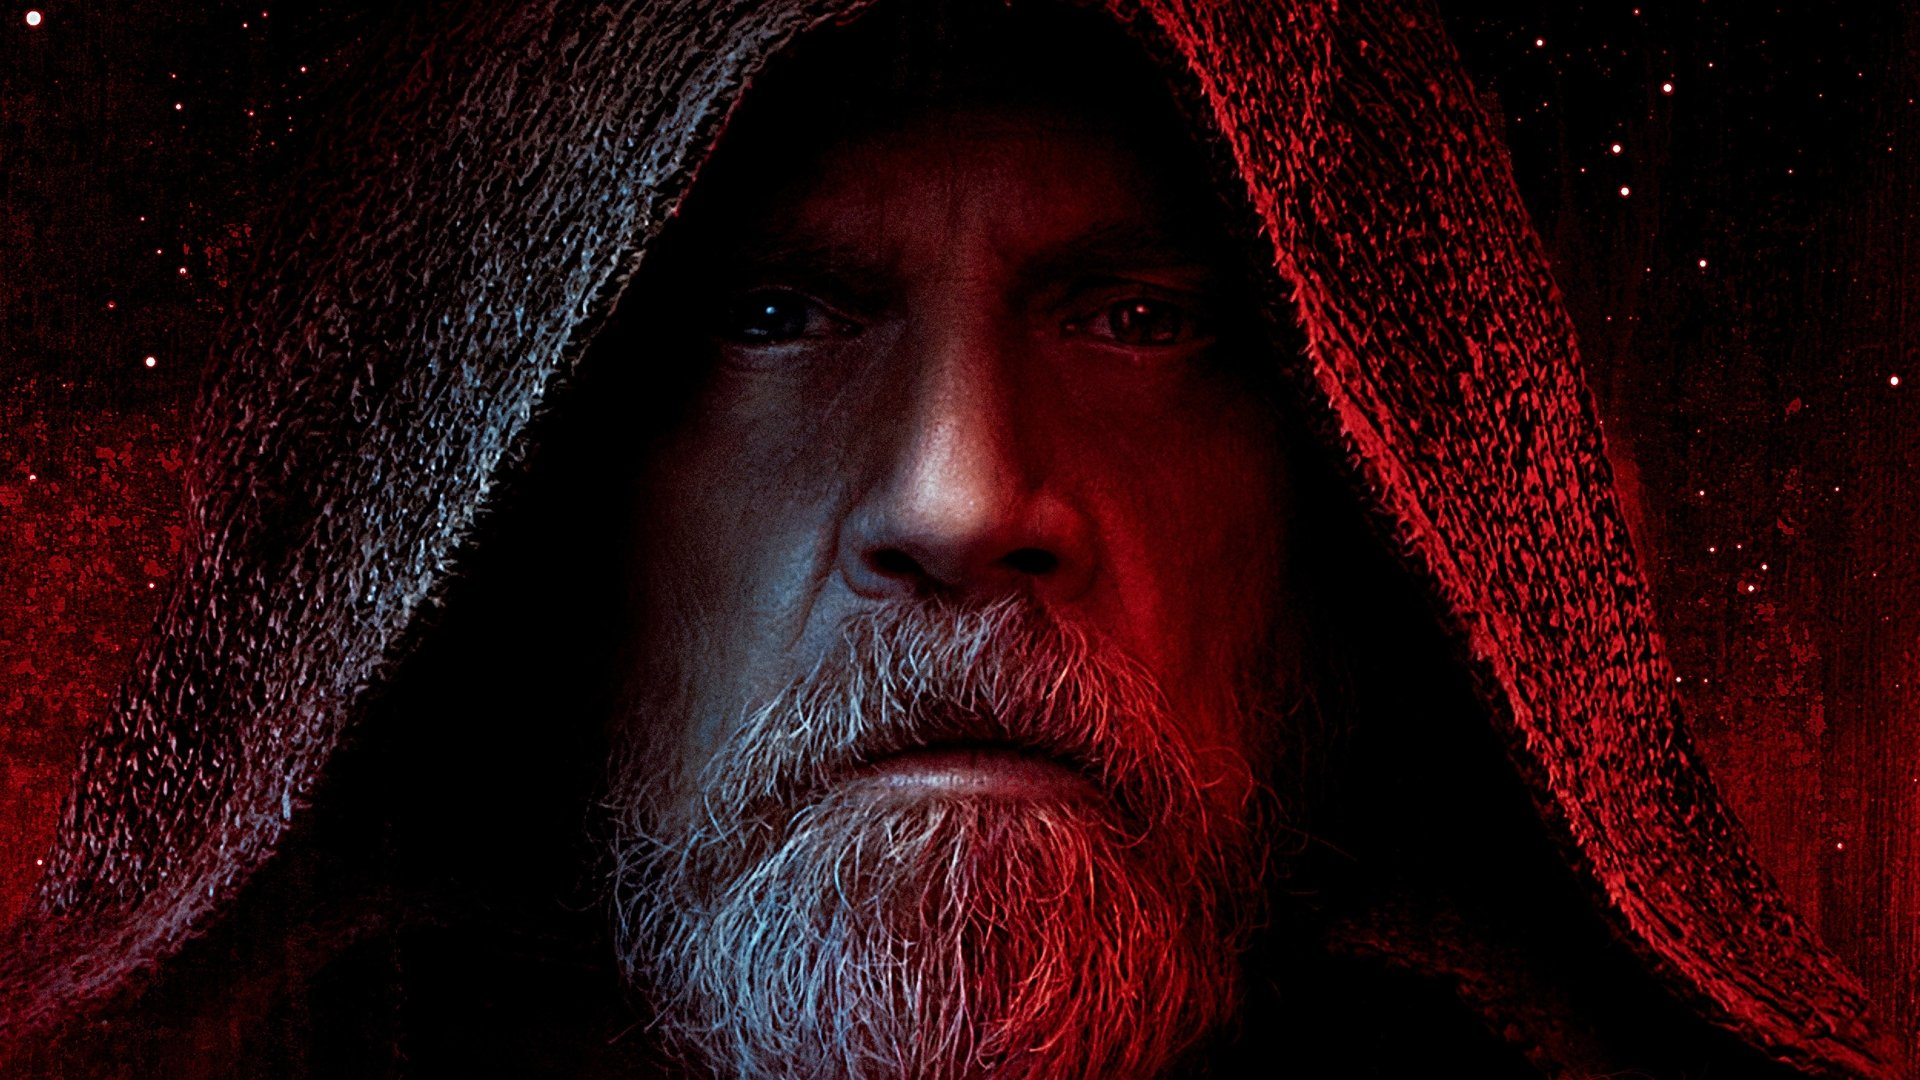 Movie - Star Wars: The Last Jedi  Star Wars Mark Hamill Luke Skywalker Wallpaper